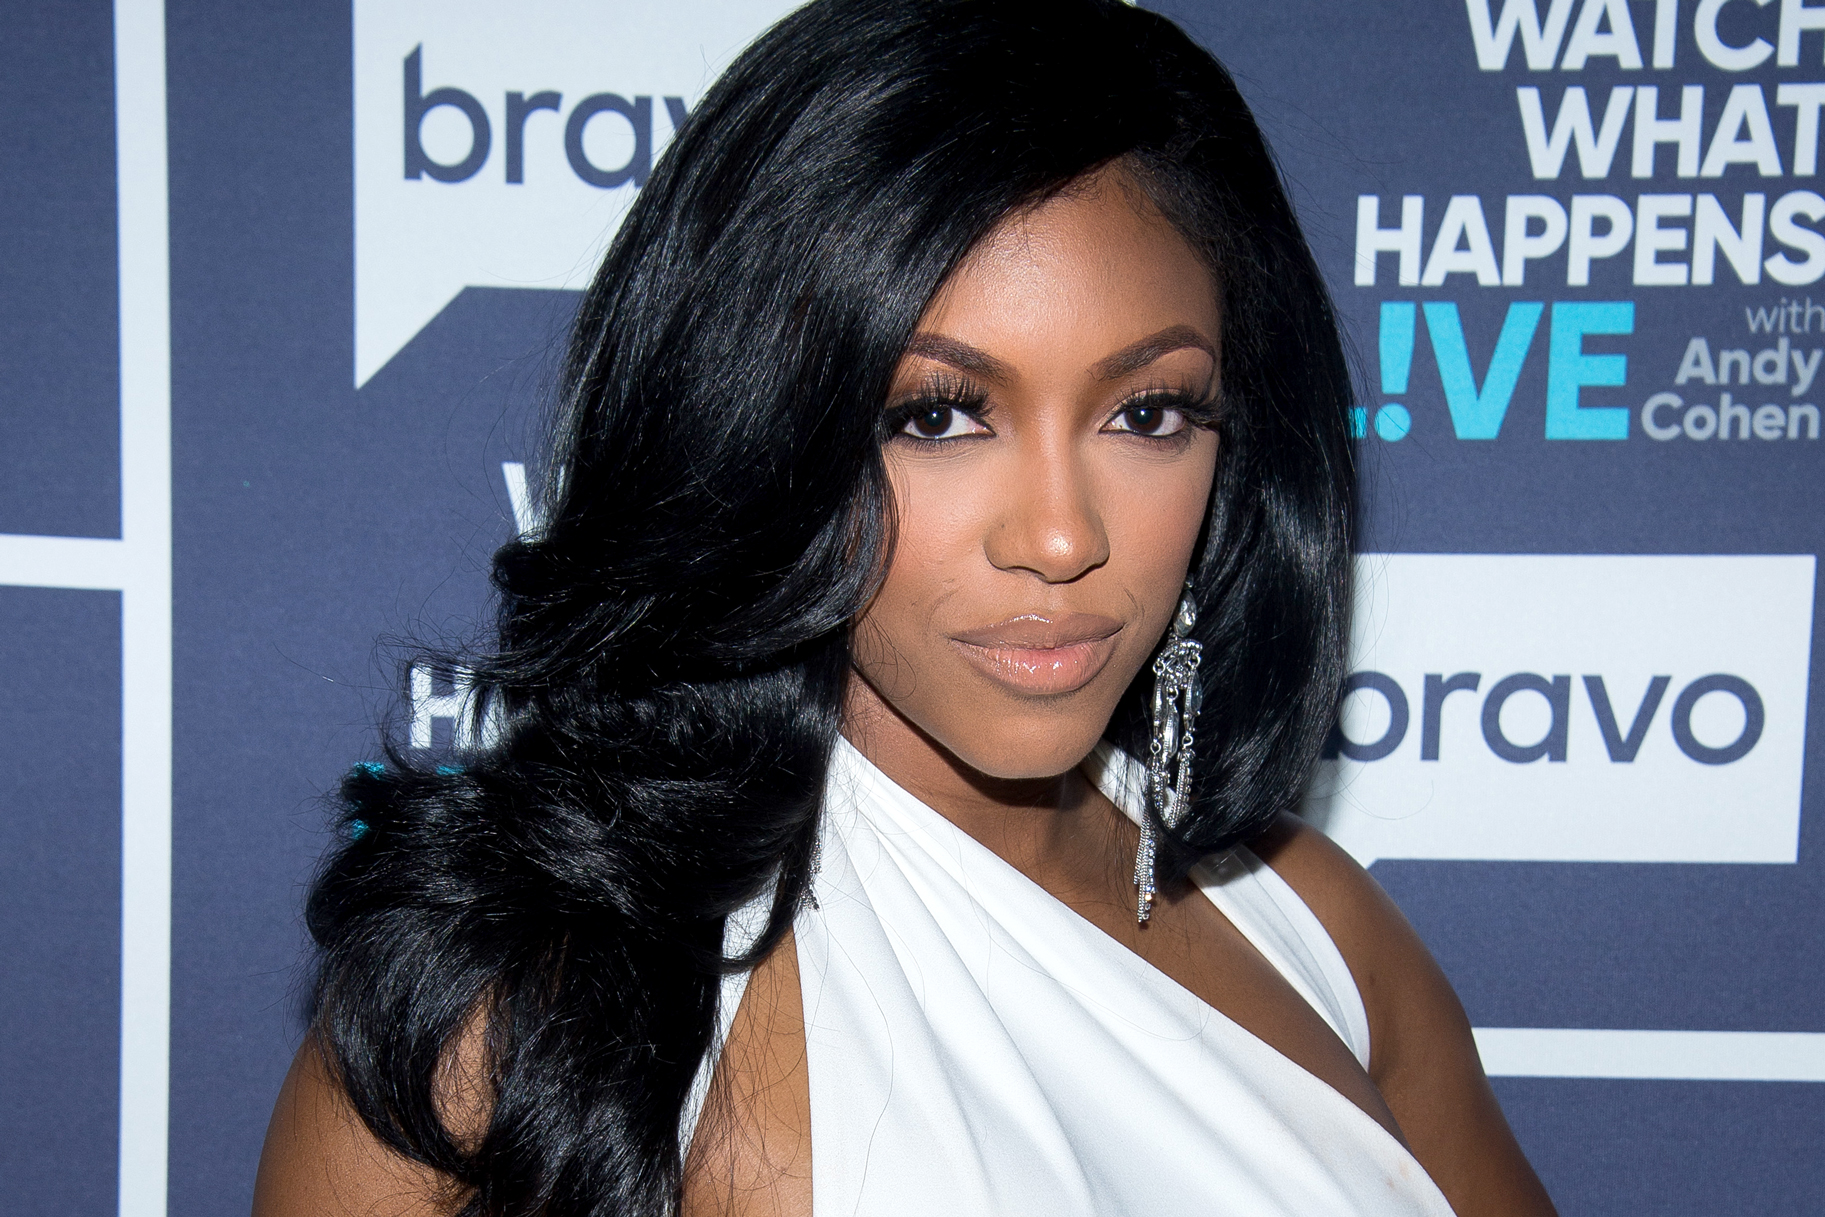 Porsha Williams Shows Fans What True Elegance Is With This Video